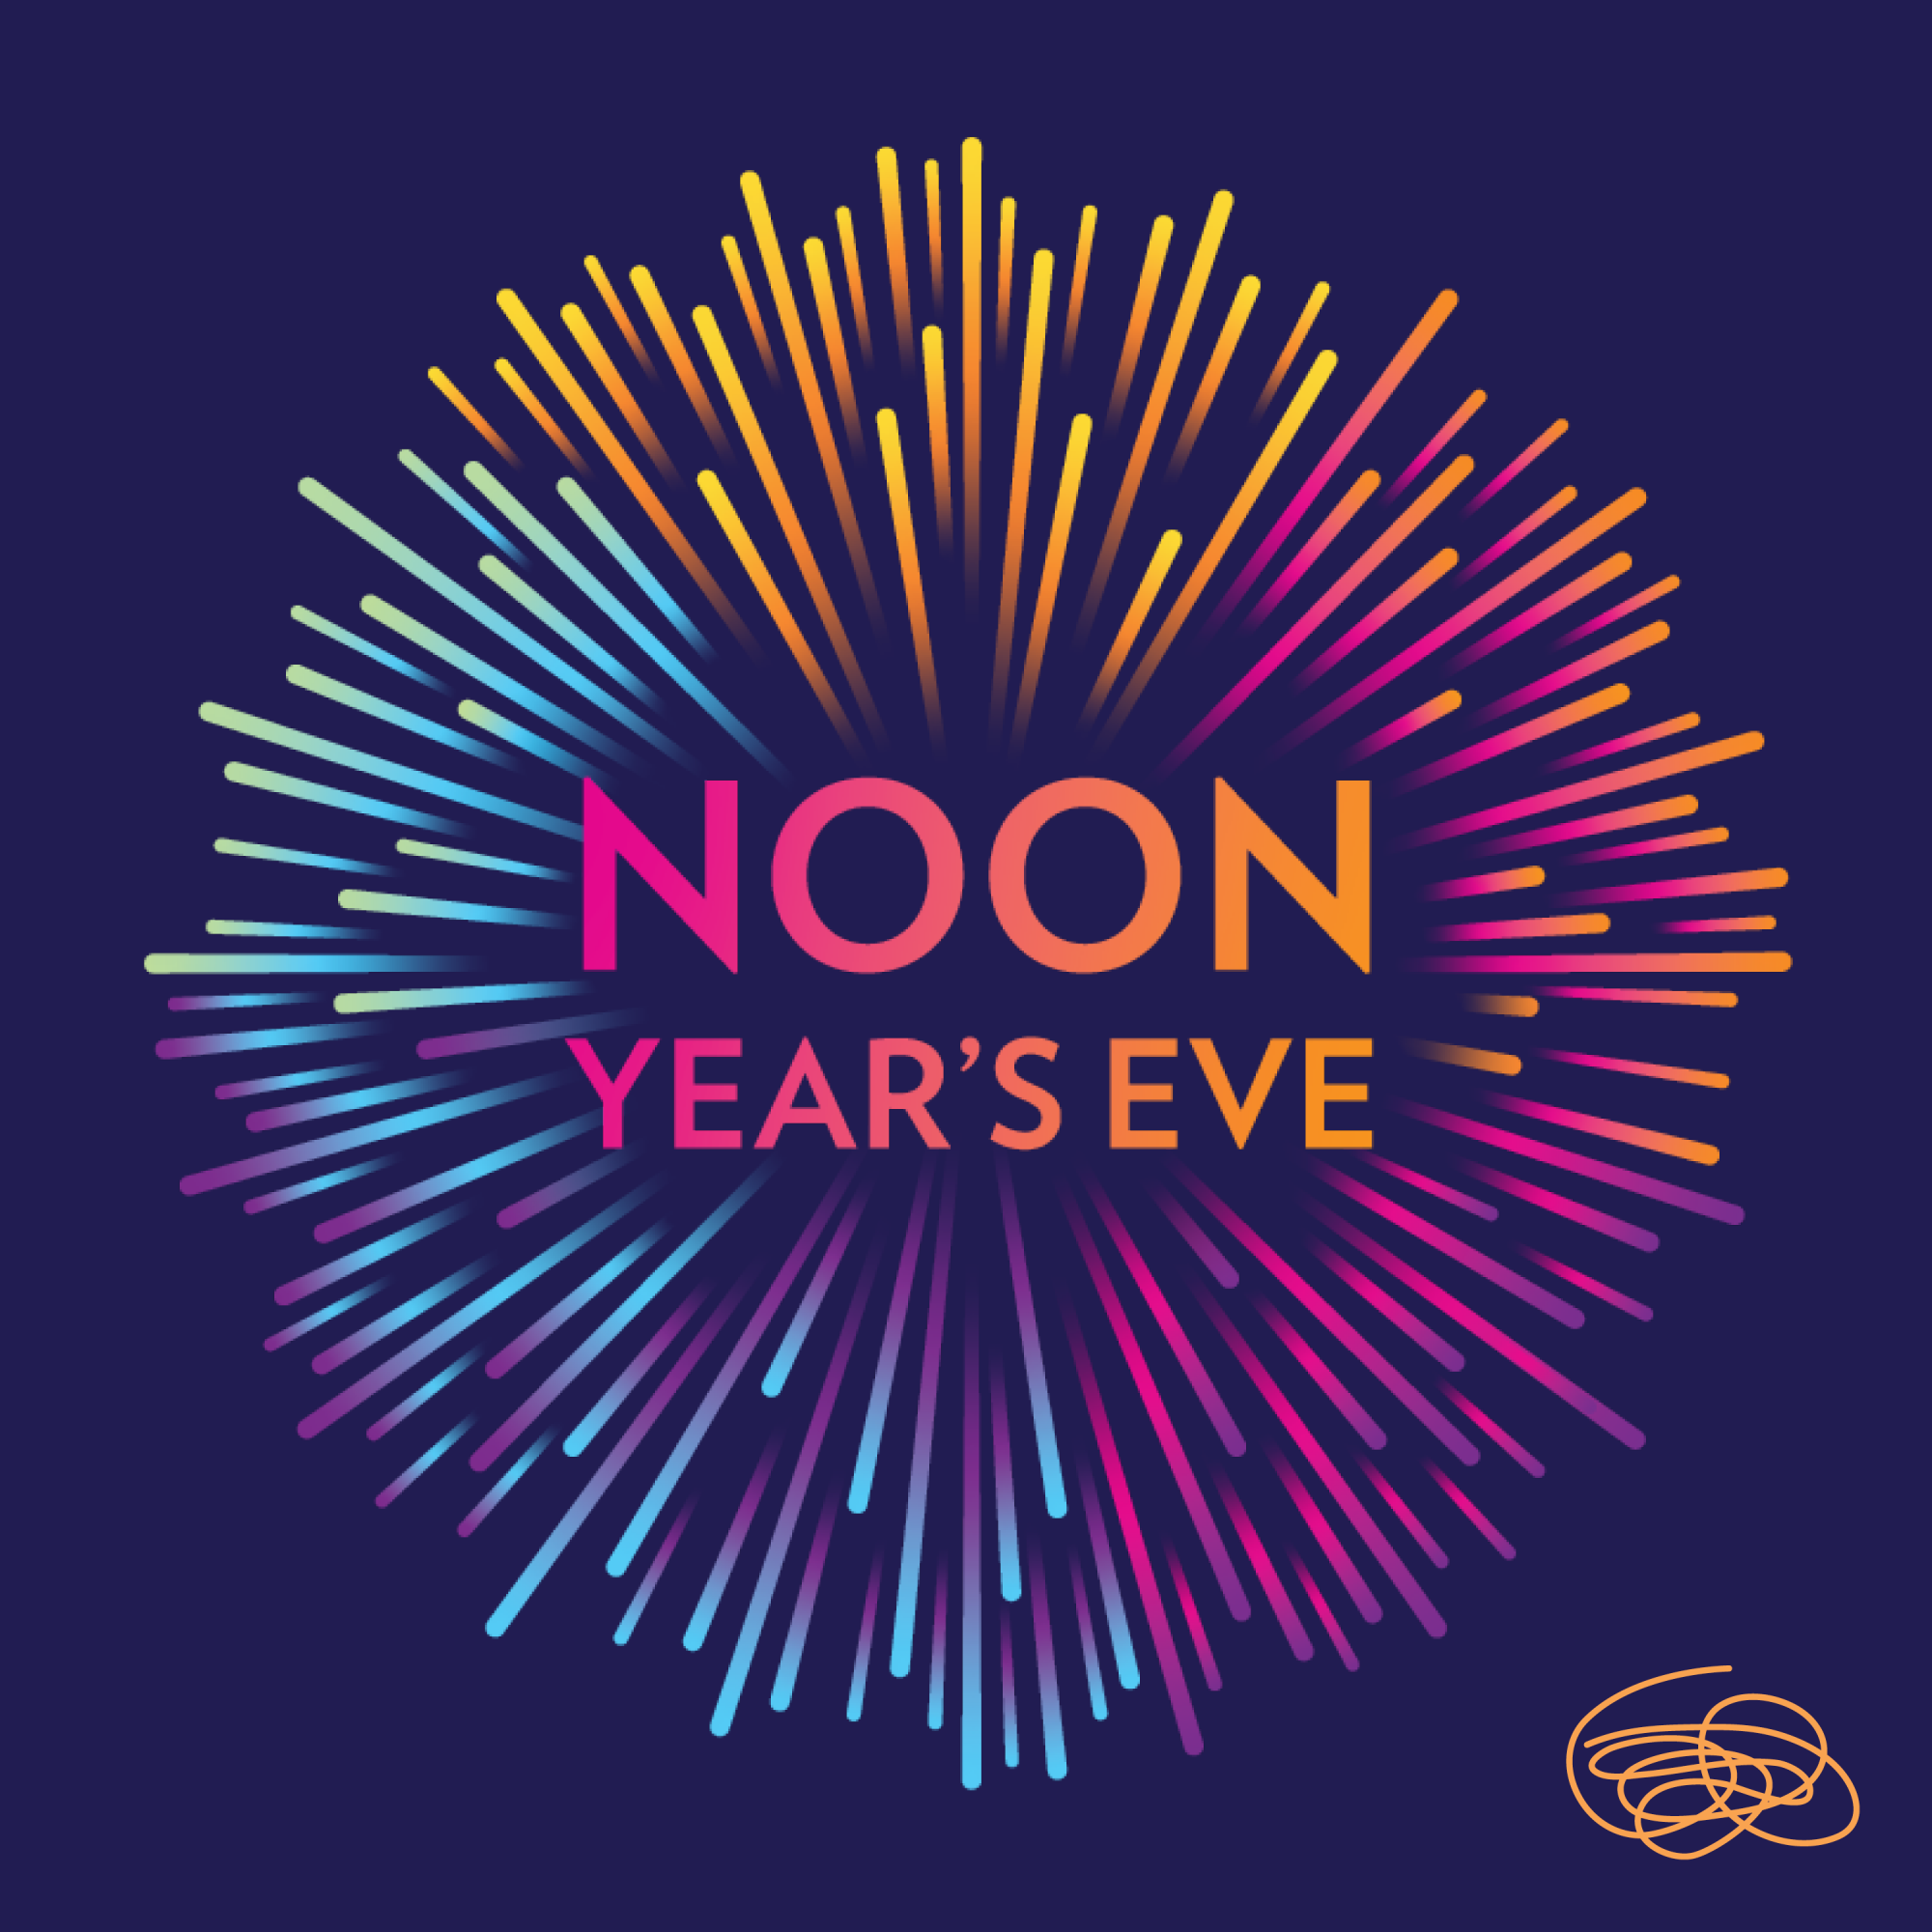 A graphic that reads Noon Year's Eve surrounded by fireworks